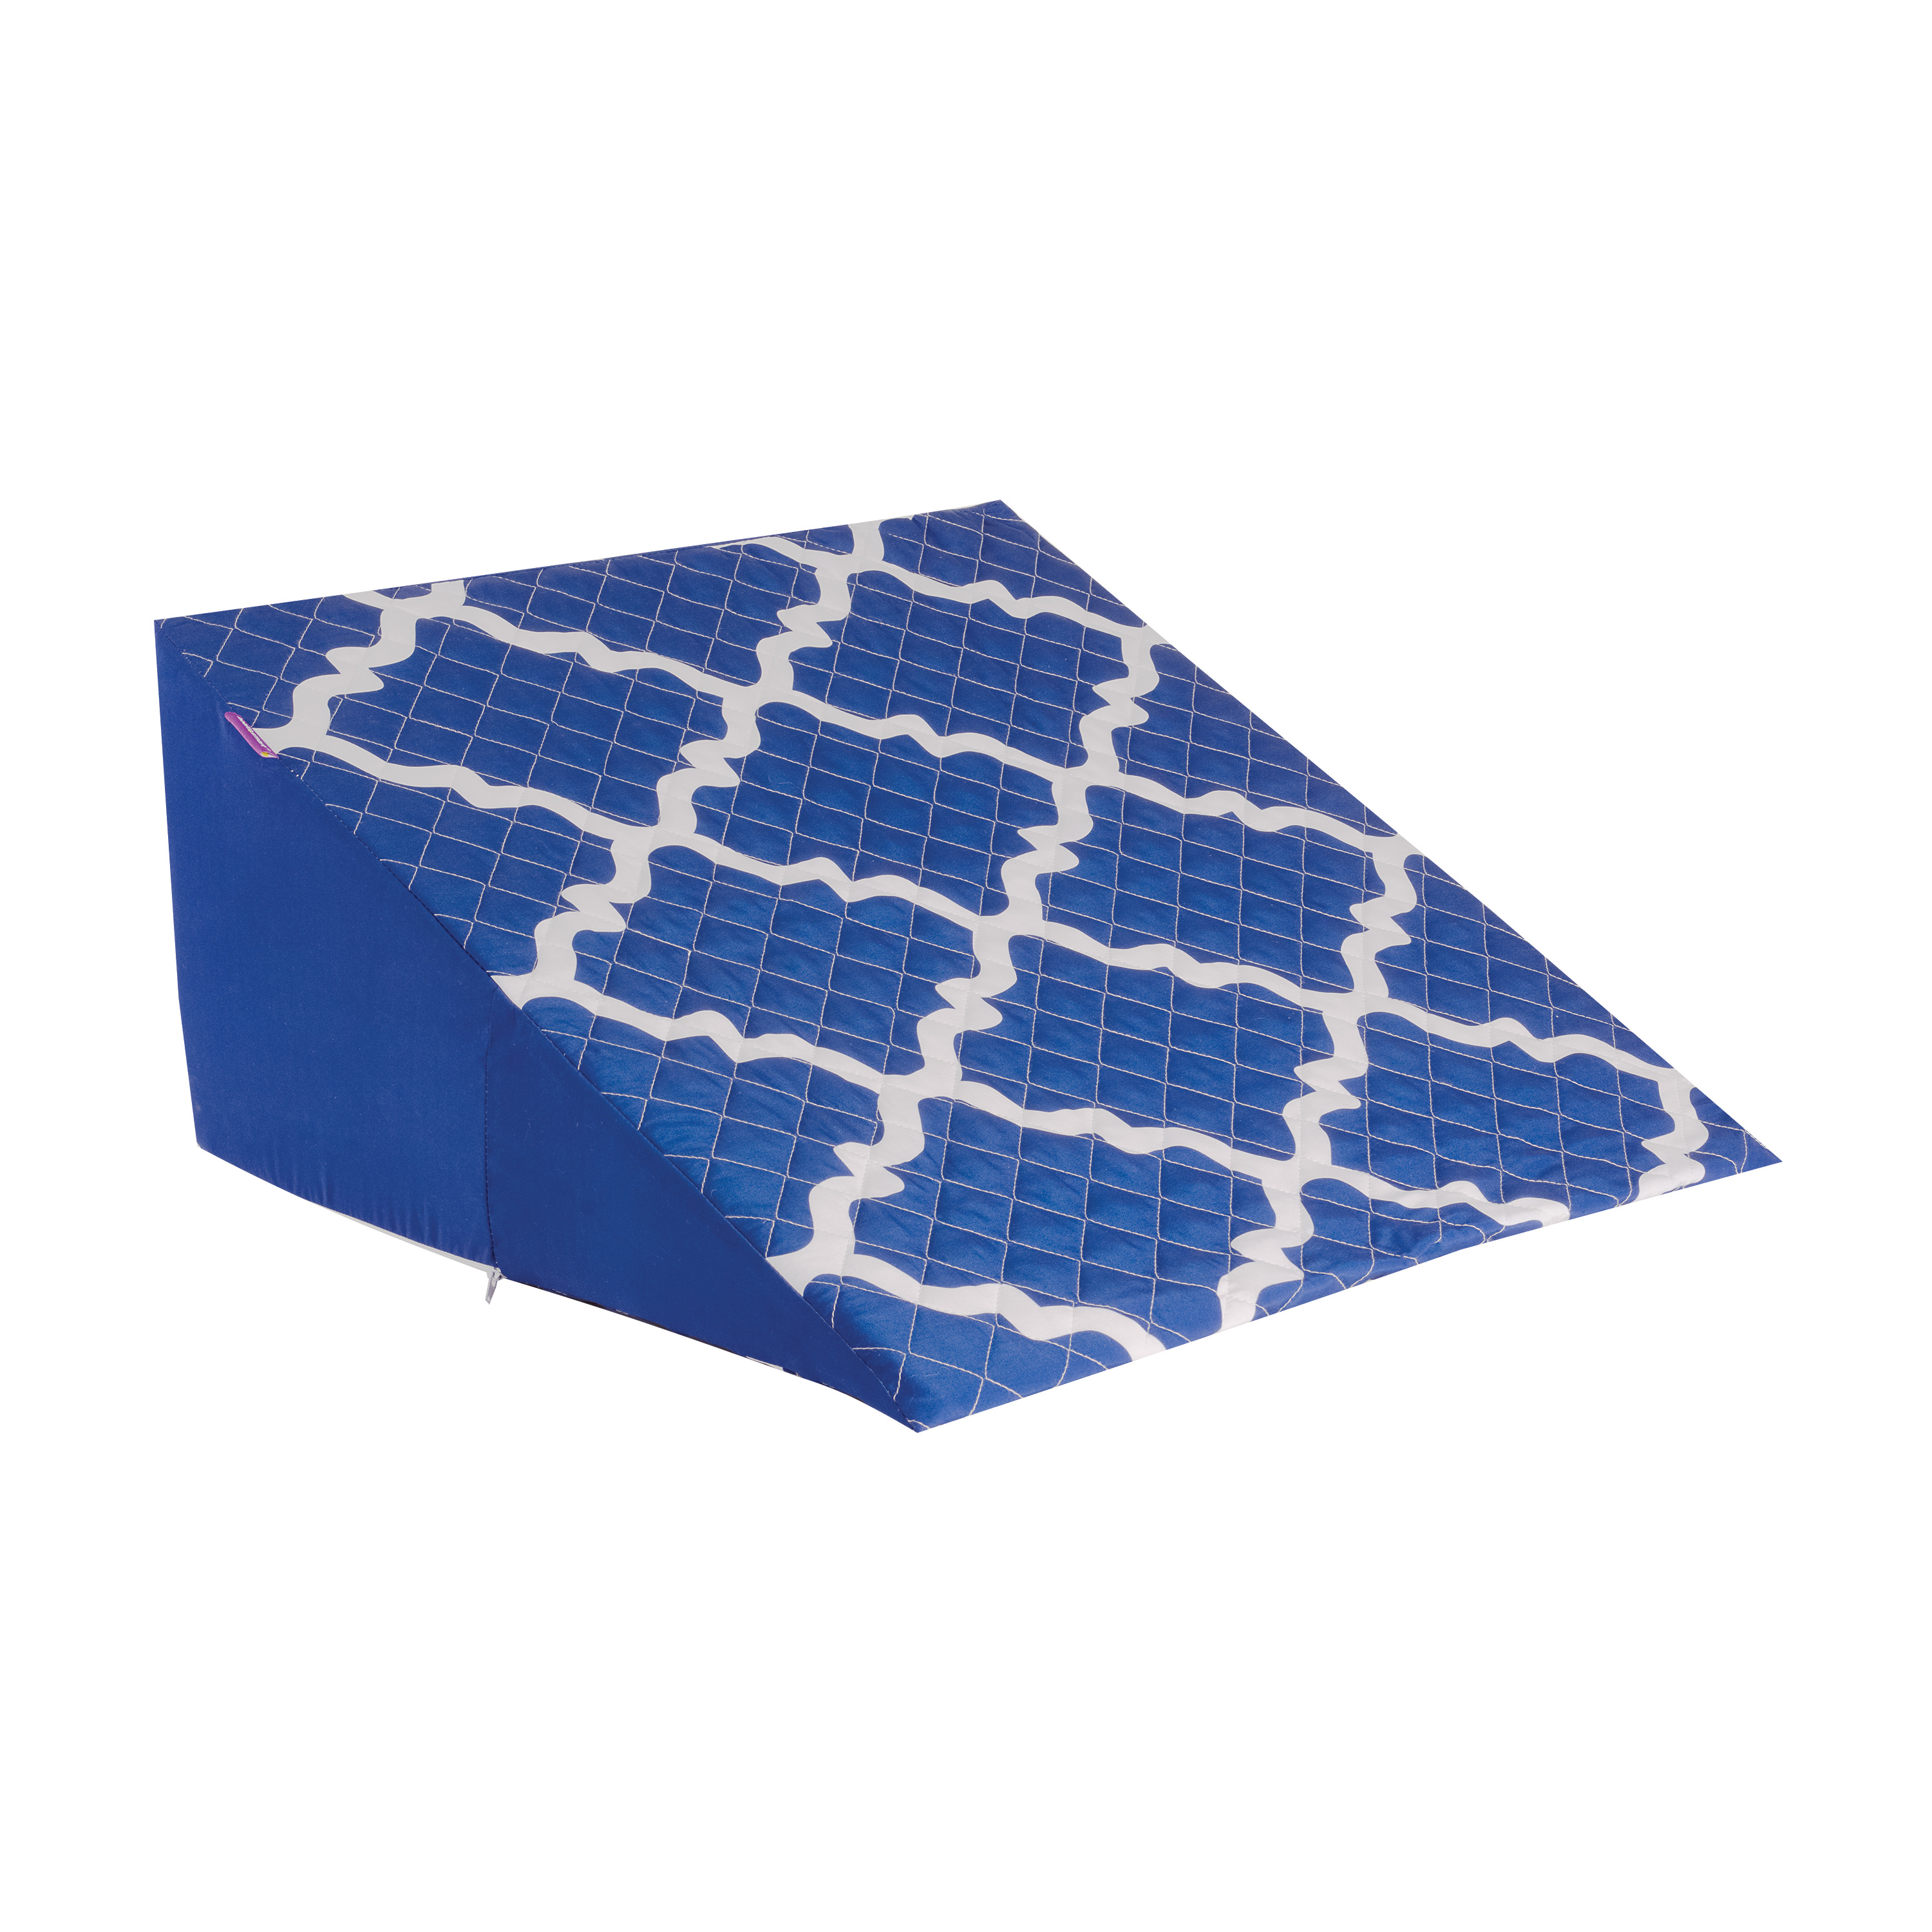 HealthSmart Premium Foam Bed Wedge Pillow with Stylish, Spill-Resistant Cover, Blue Moroccan, 12 x 24 x 24 Inches